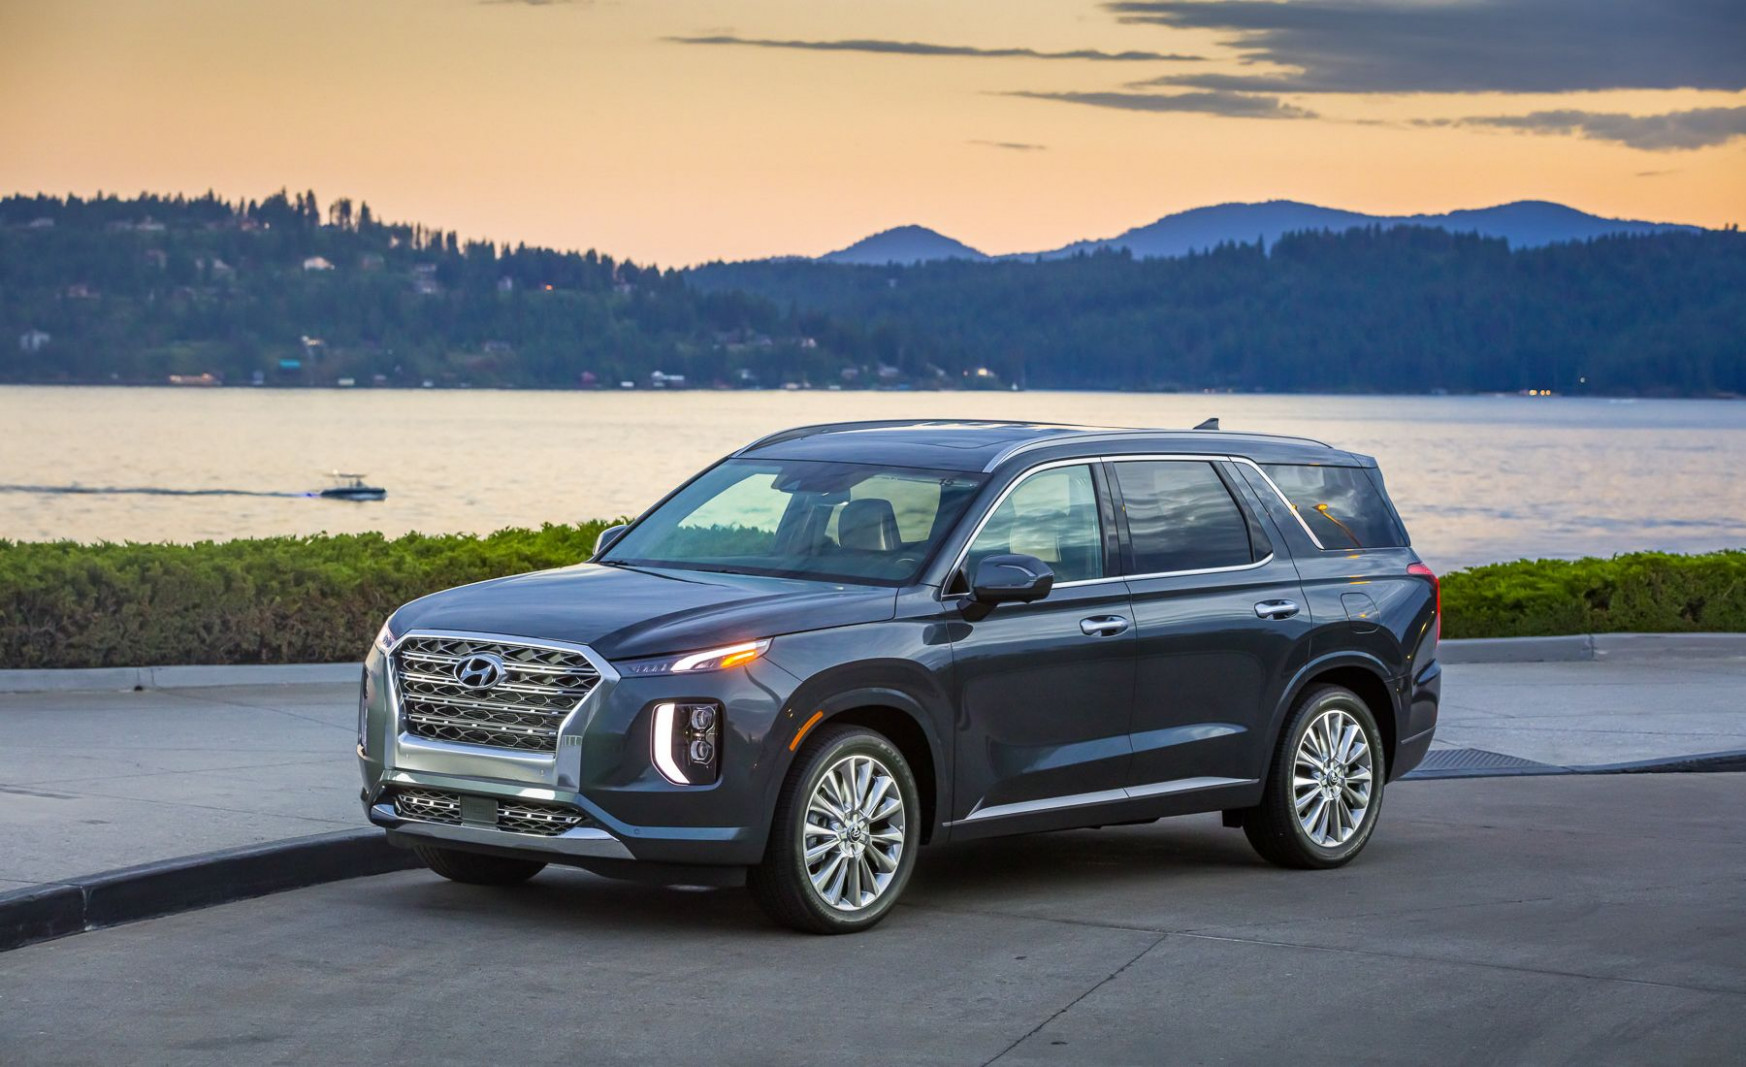 7 Hyundai Palisade Review, Pricing, and Specs